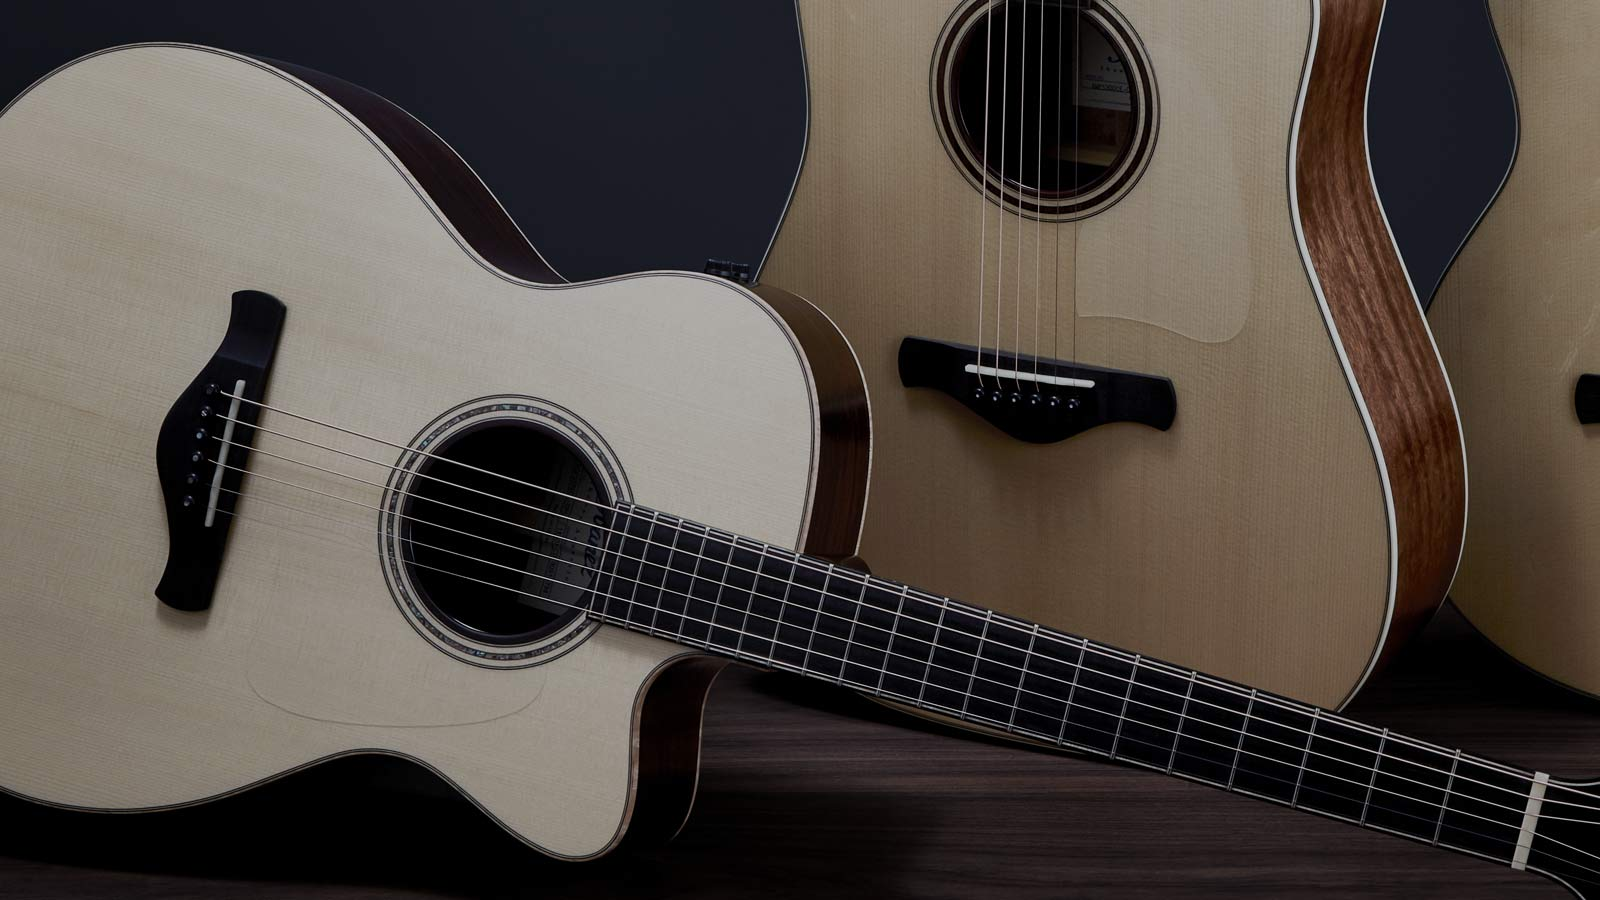 ACOUSTIC GUITARS | PRODUCTS | Ibanez guitars